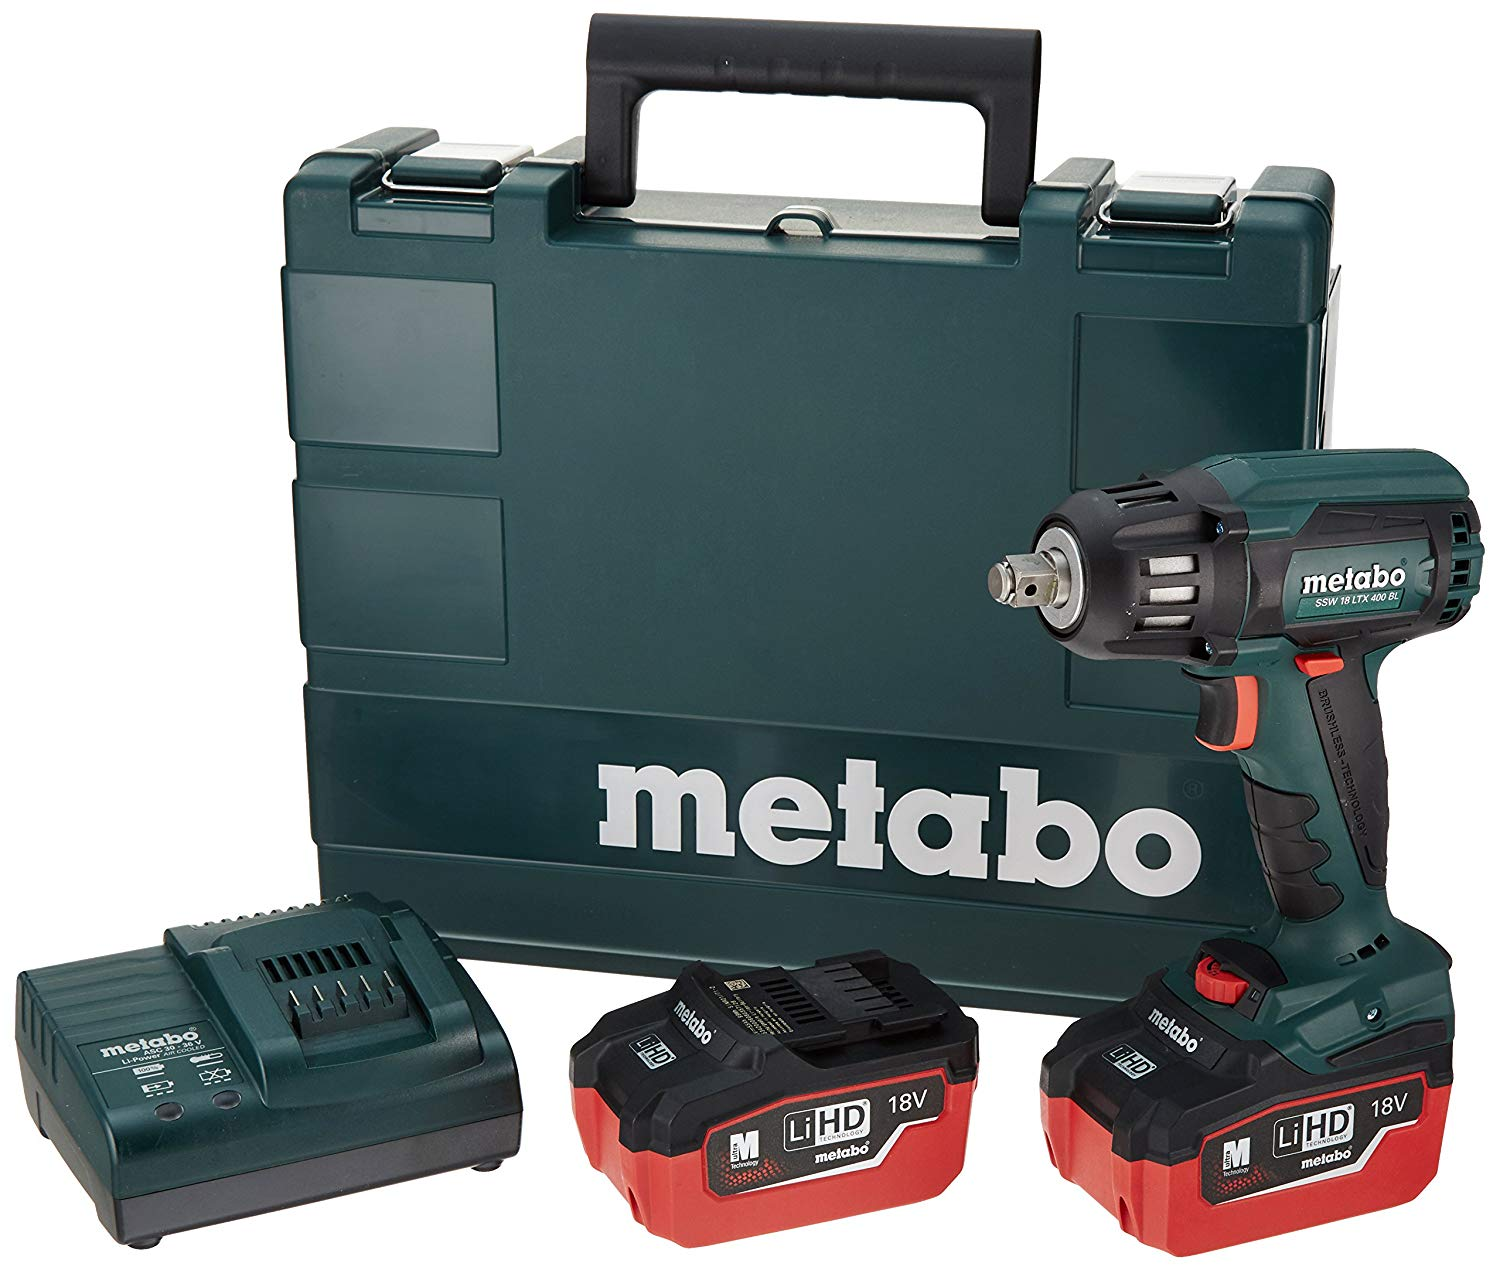 metabo 18v brushless 1/2-inch impact wrench review